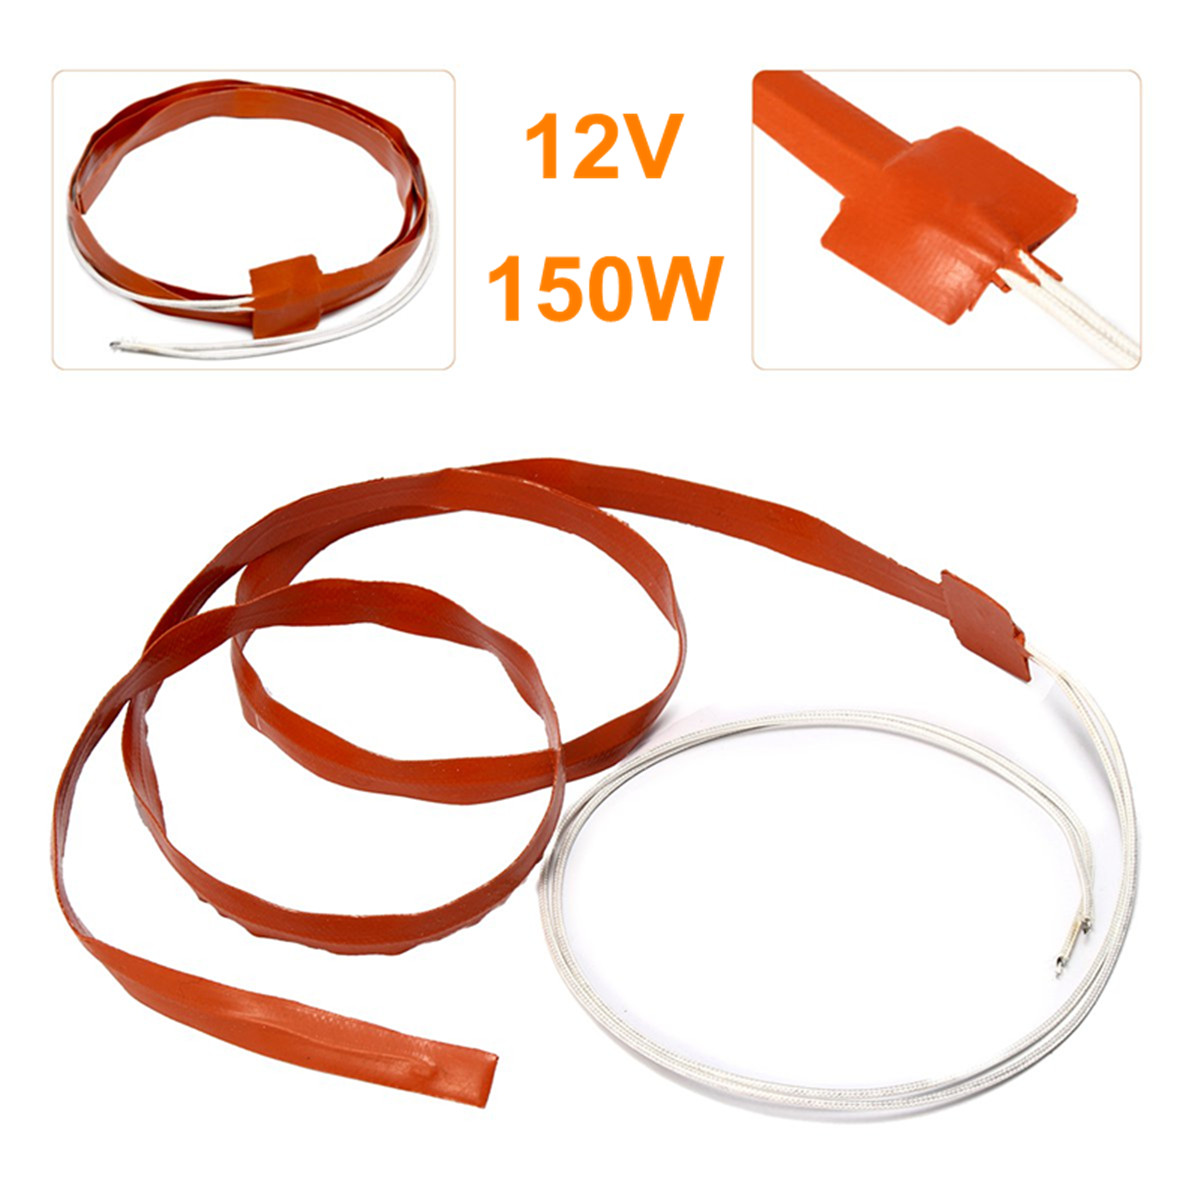 1.2m 150W 12V WVO Intake Pipe Injection Line Manifold Heater Silicone Heat Strip Heating System Pipeline Thawing Heating Belt1.2m 150W 12V WVO Intake Pipe Injection Line Manifold Heater Silicone Heat Strip Heating System Pipeline Thawing Heating Belt